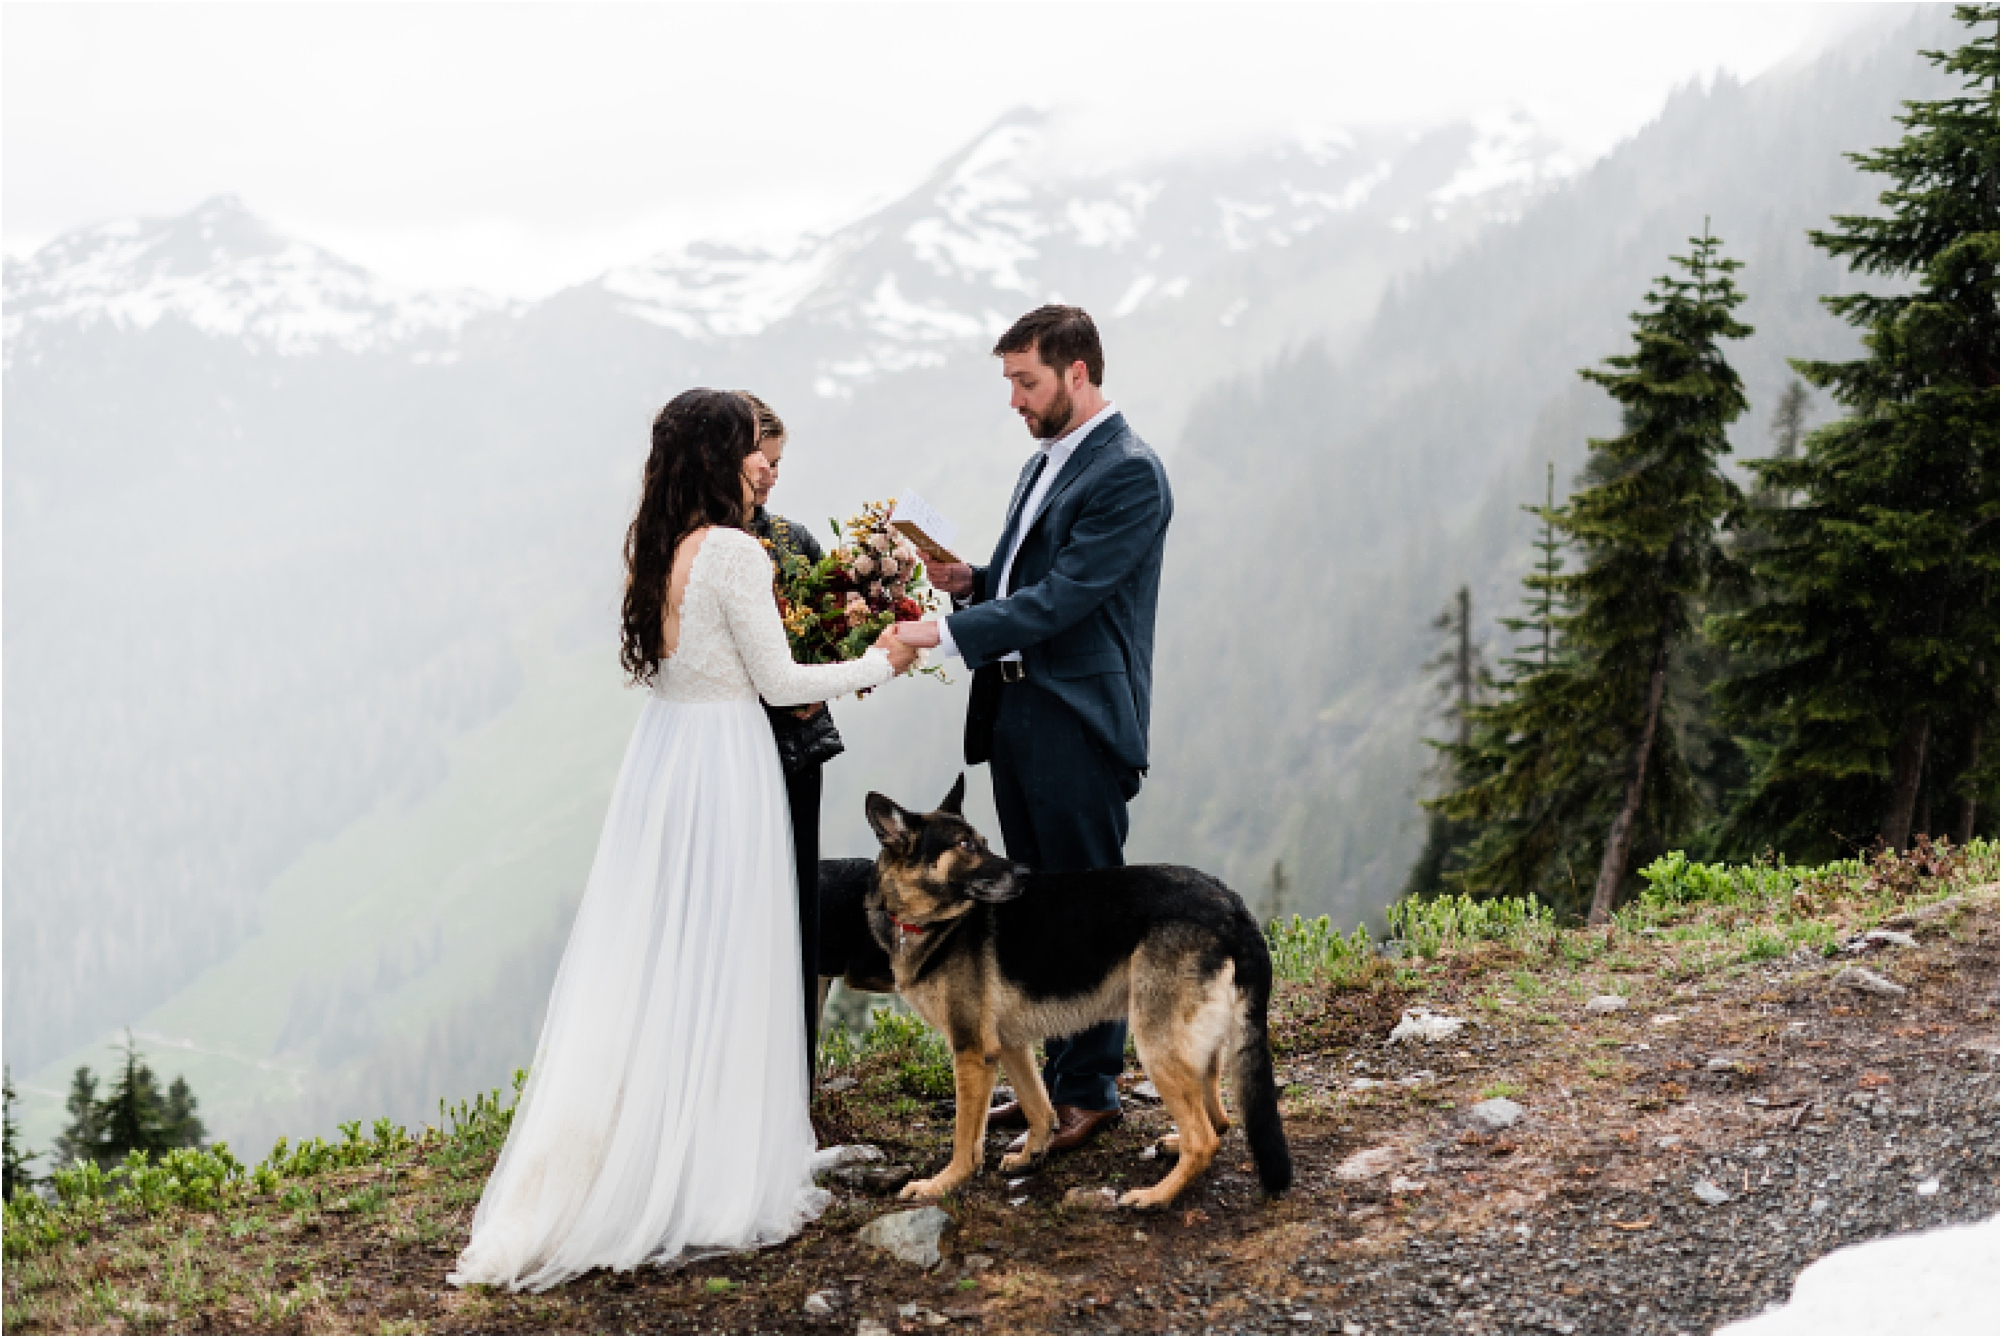 Christina & Tanner exchanging vows during their elopement ceremony on Mt. Baker. Image by Forthright Photo, PNW Wedding Photographers.